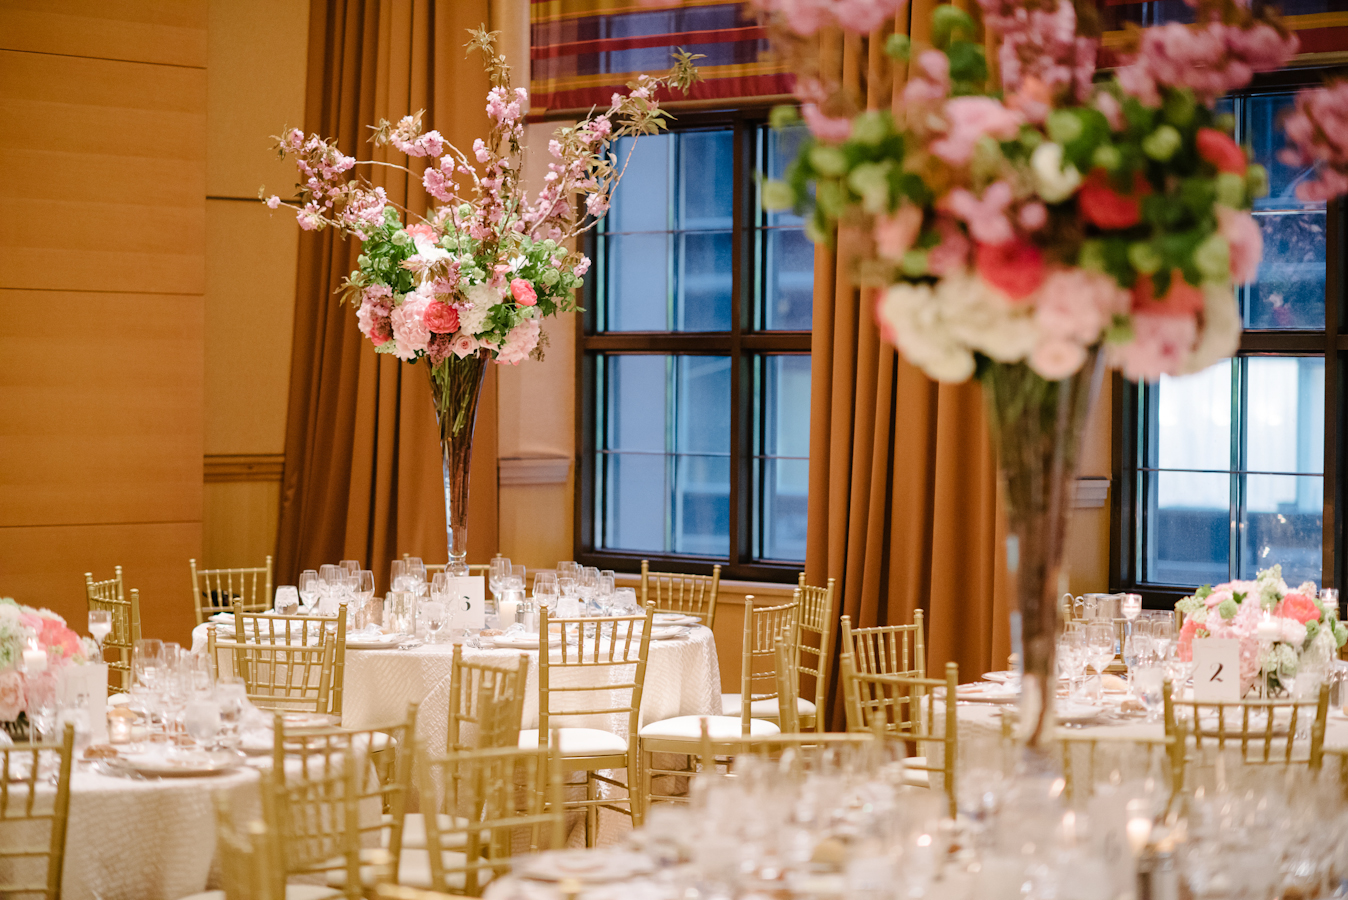 four seasons hotel wedding ang weddings and events brian hatton photography-34jpg.jpg